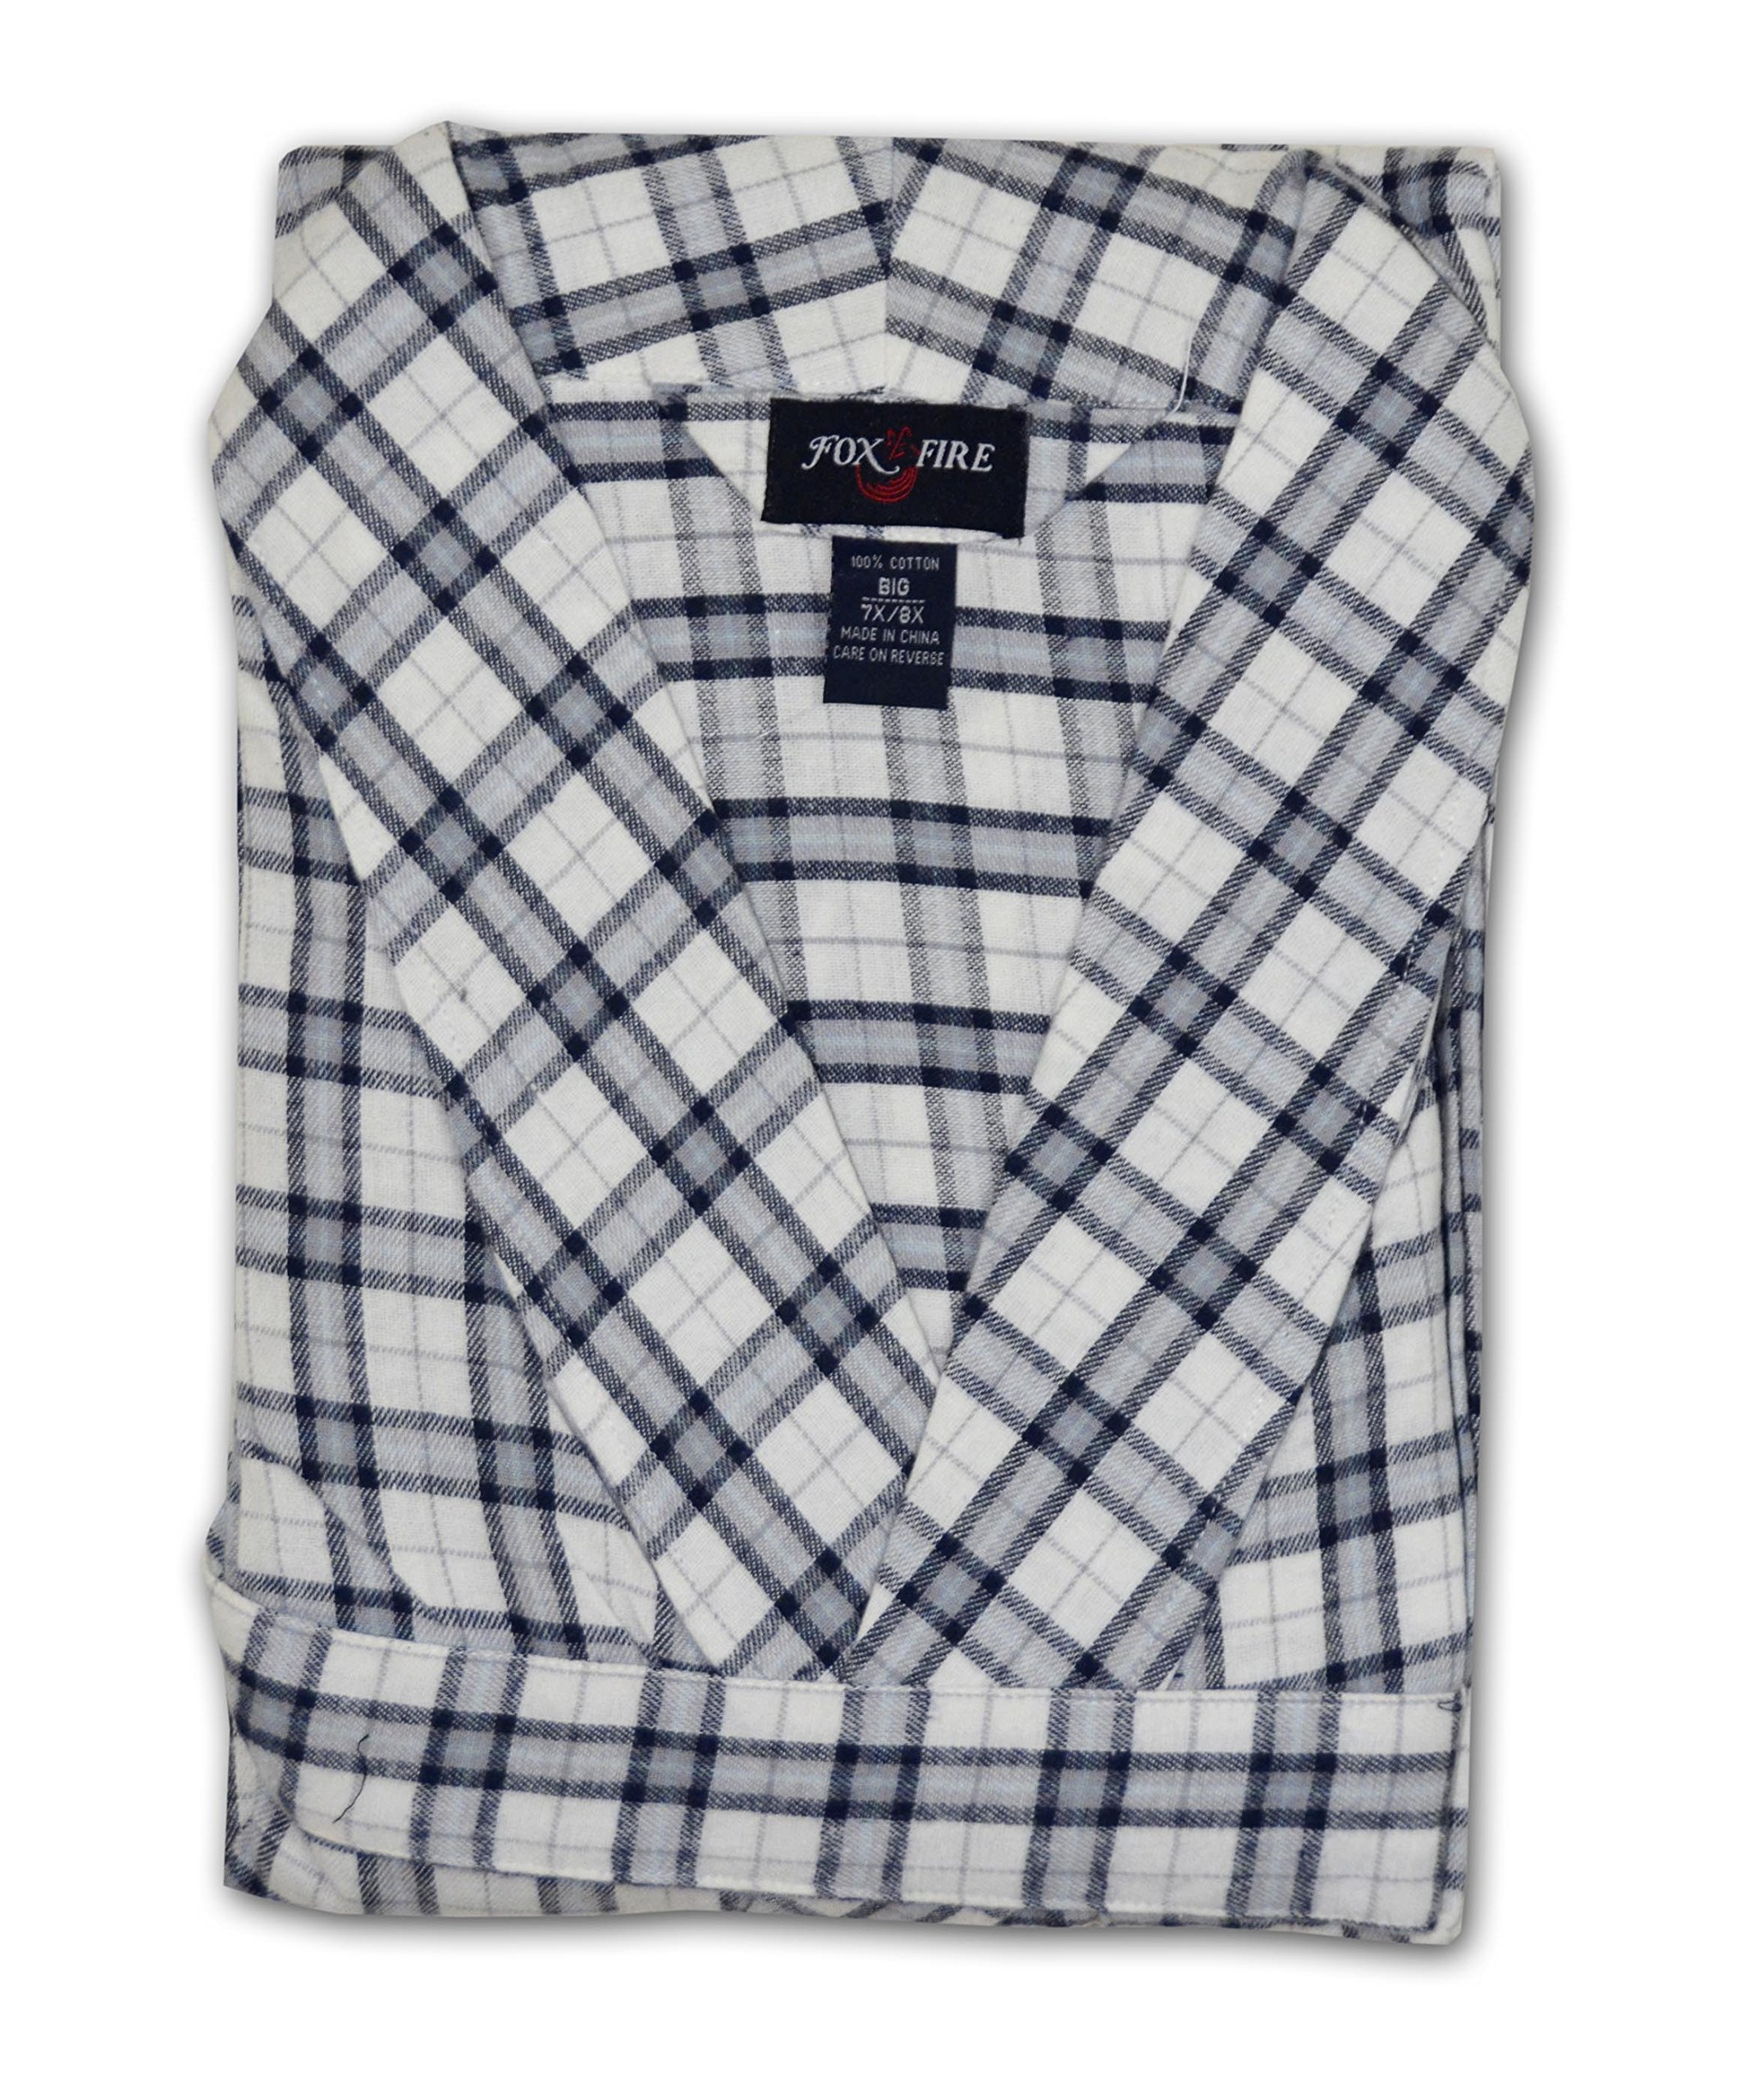 Foxfire Big and Tall Flannel Robe - Assorted (Assorted 7/8X)